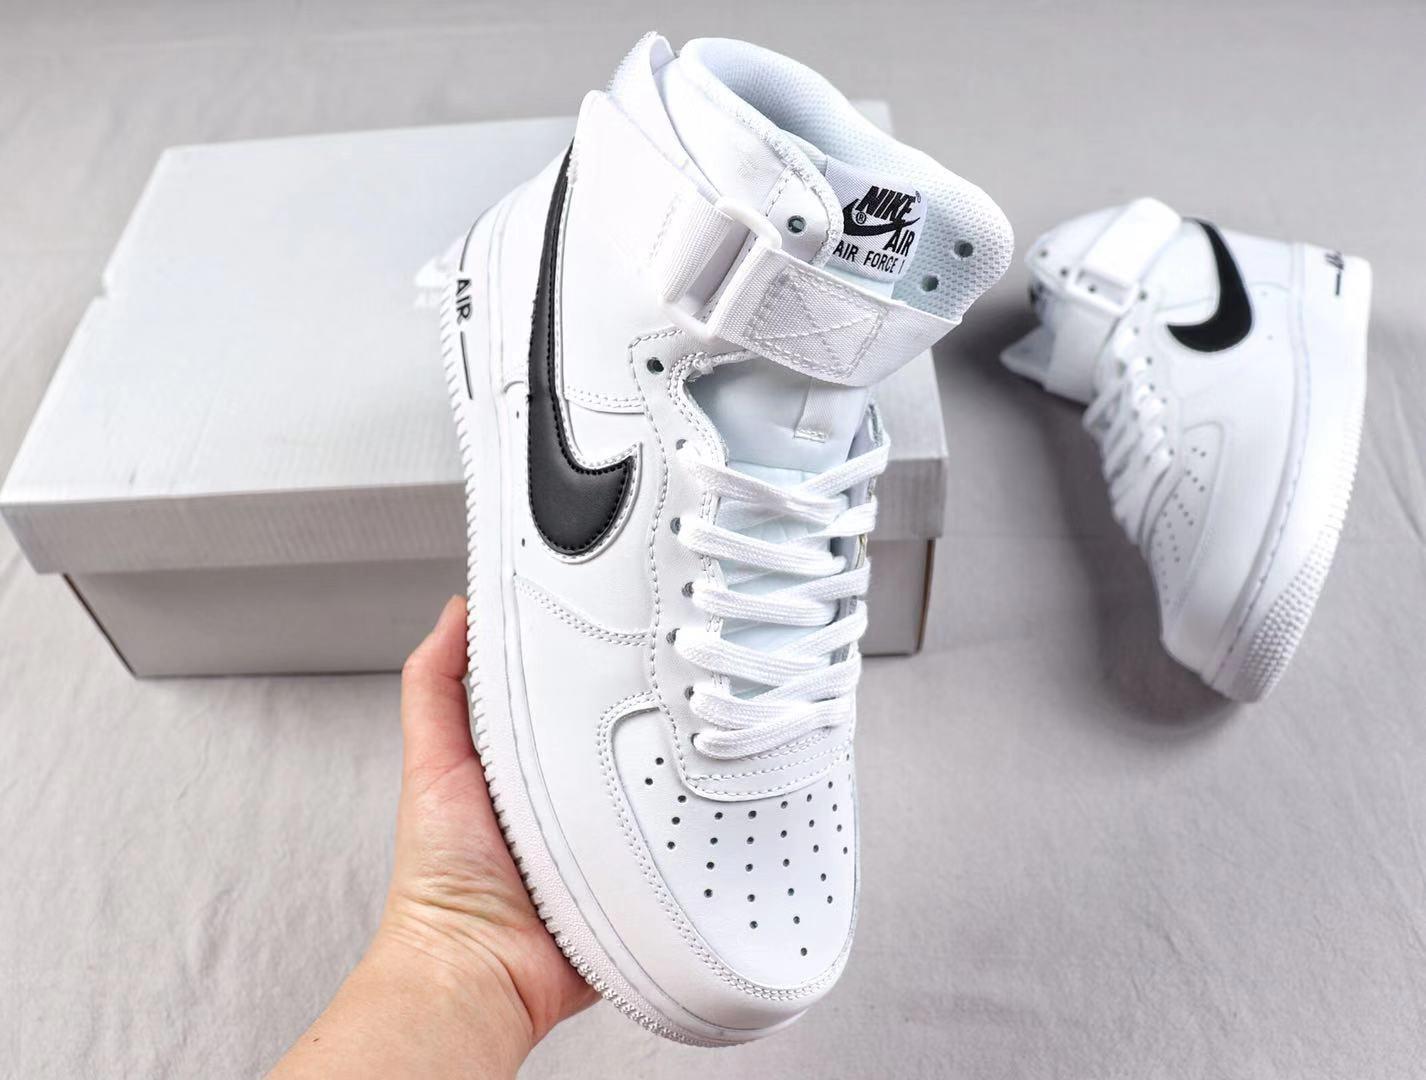 Best Sell Nike Air Force 1'07 High White/Black Fashion Shoes AT4141-108